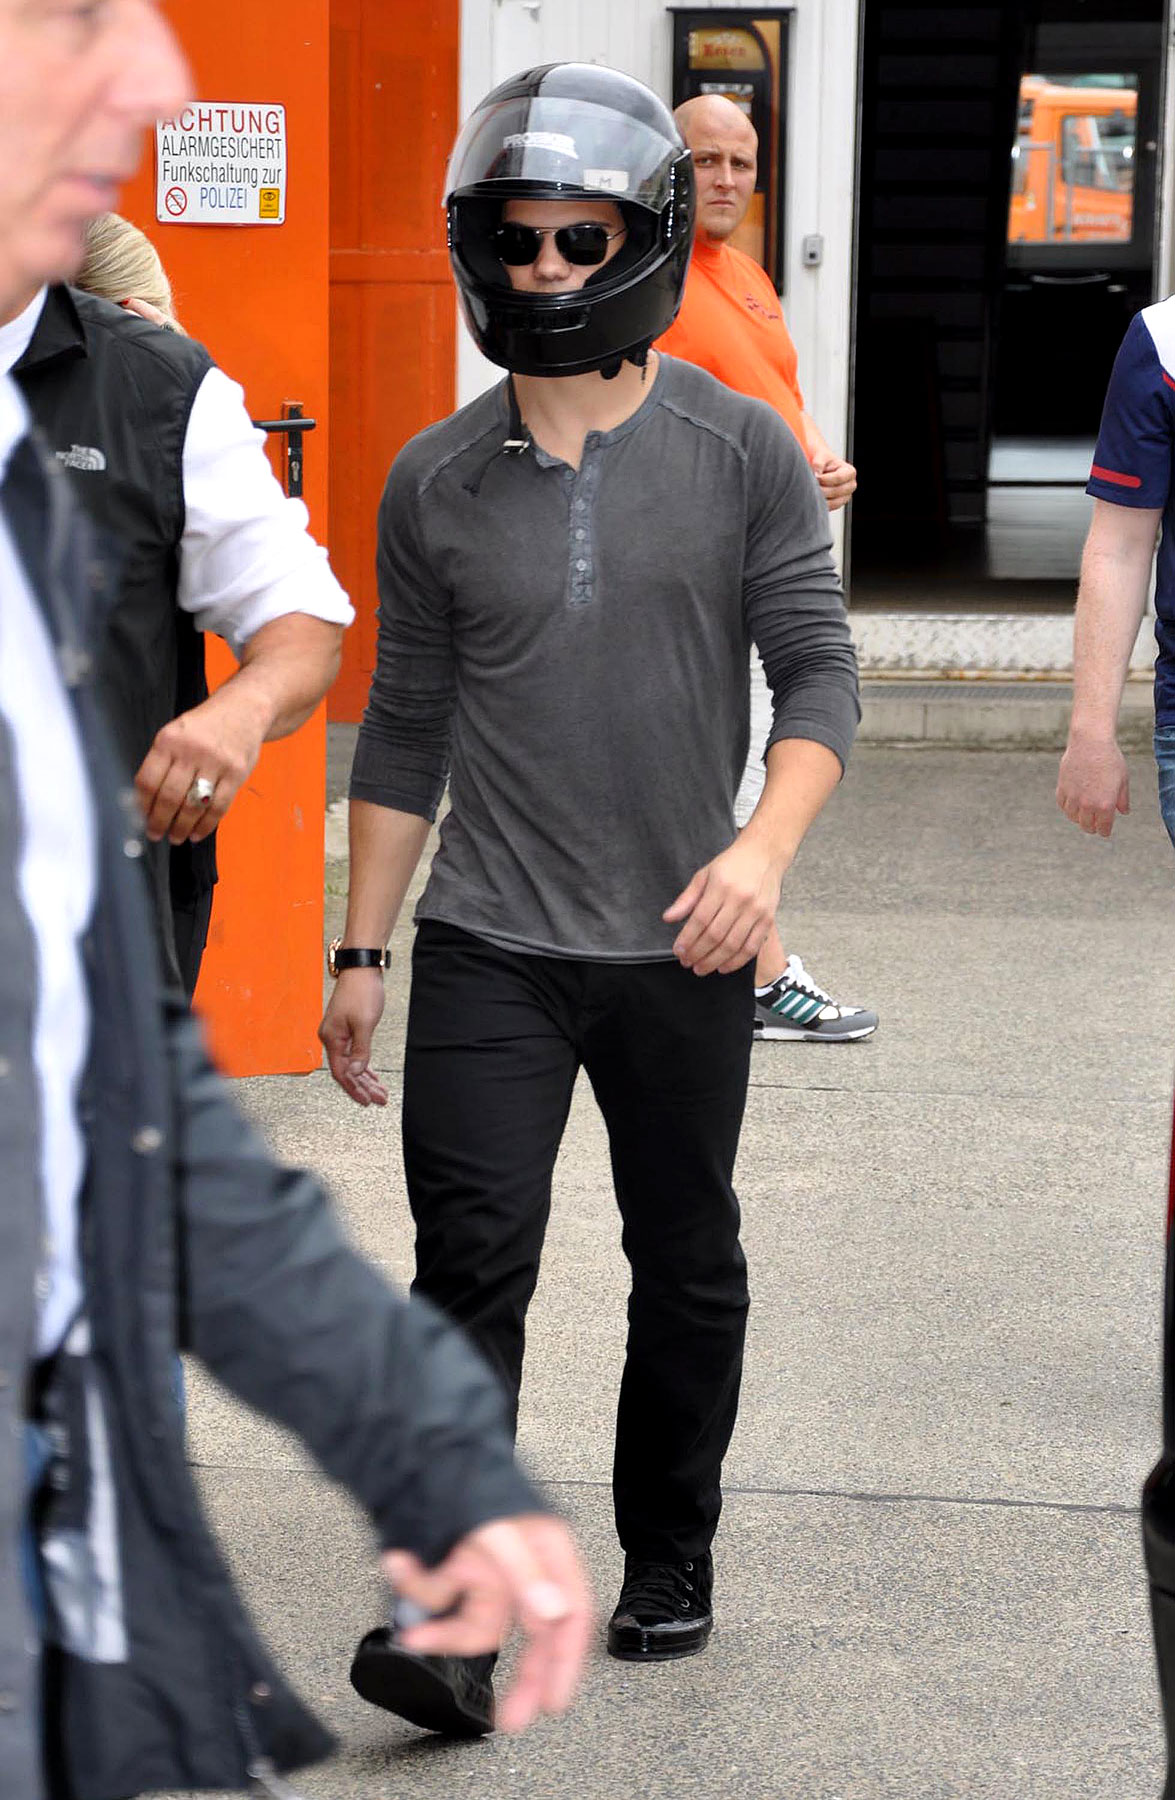 Taylor Lautner Goes Go-Karting In Germany (PHOTOS)